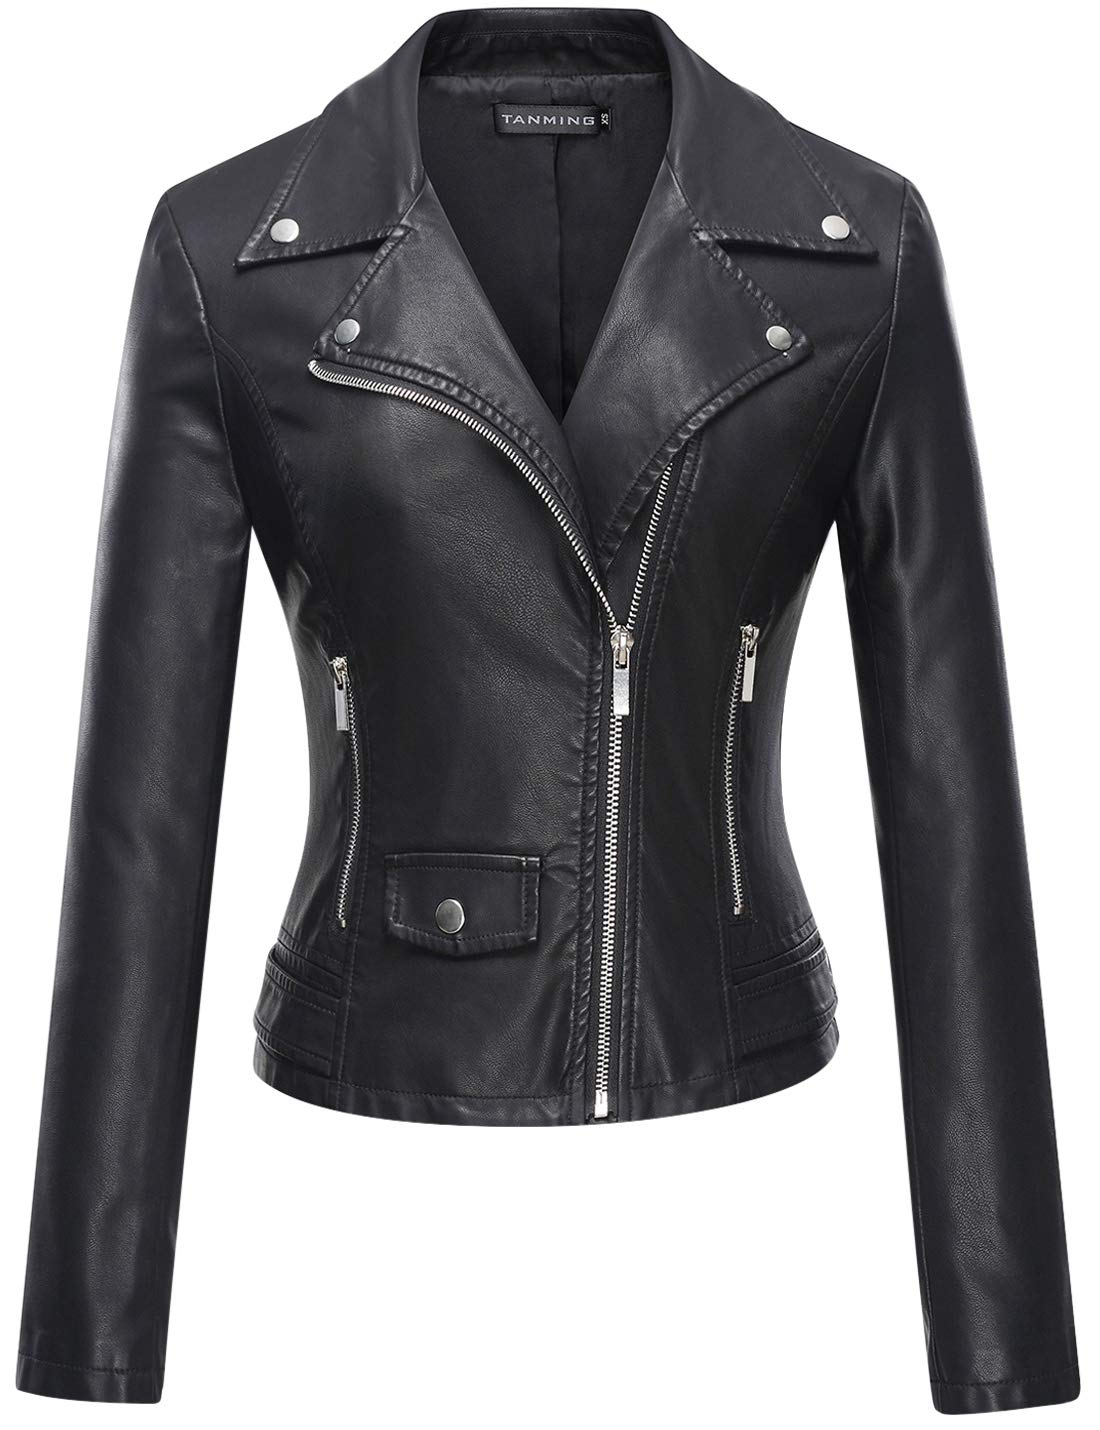 Tanming Women's Casual Slim Motorcycle PU Faux Leather Jacket Coat (Large, Black)